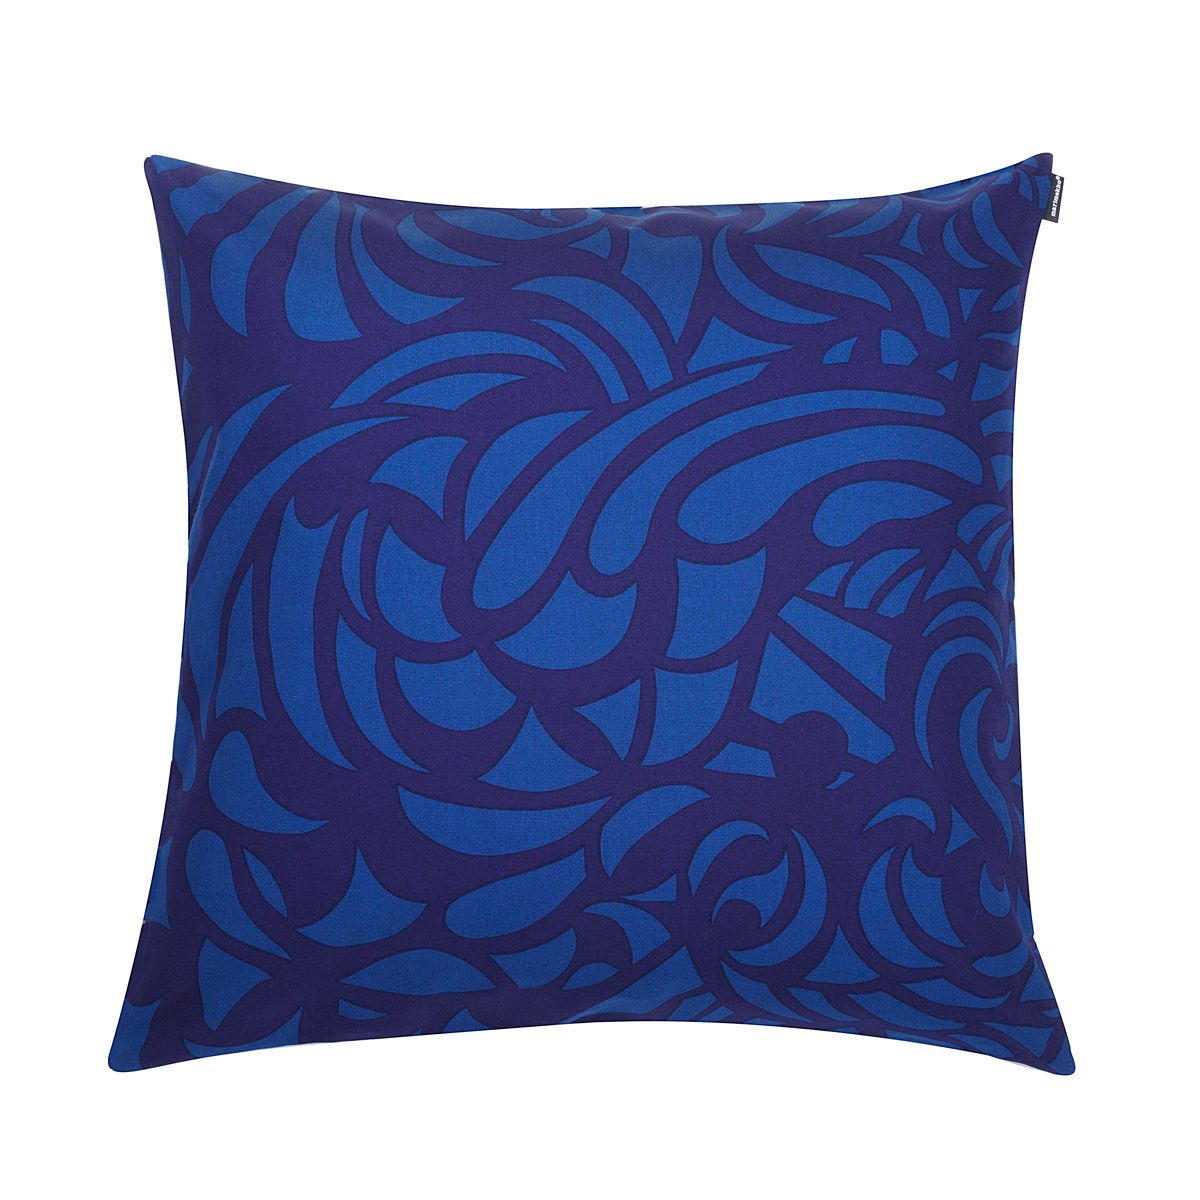 Dark Blue Throw Pillow : Marimekko Raakel Blue / Dark Blue Throw Pillow - Marimekko Bed & Bath Sale